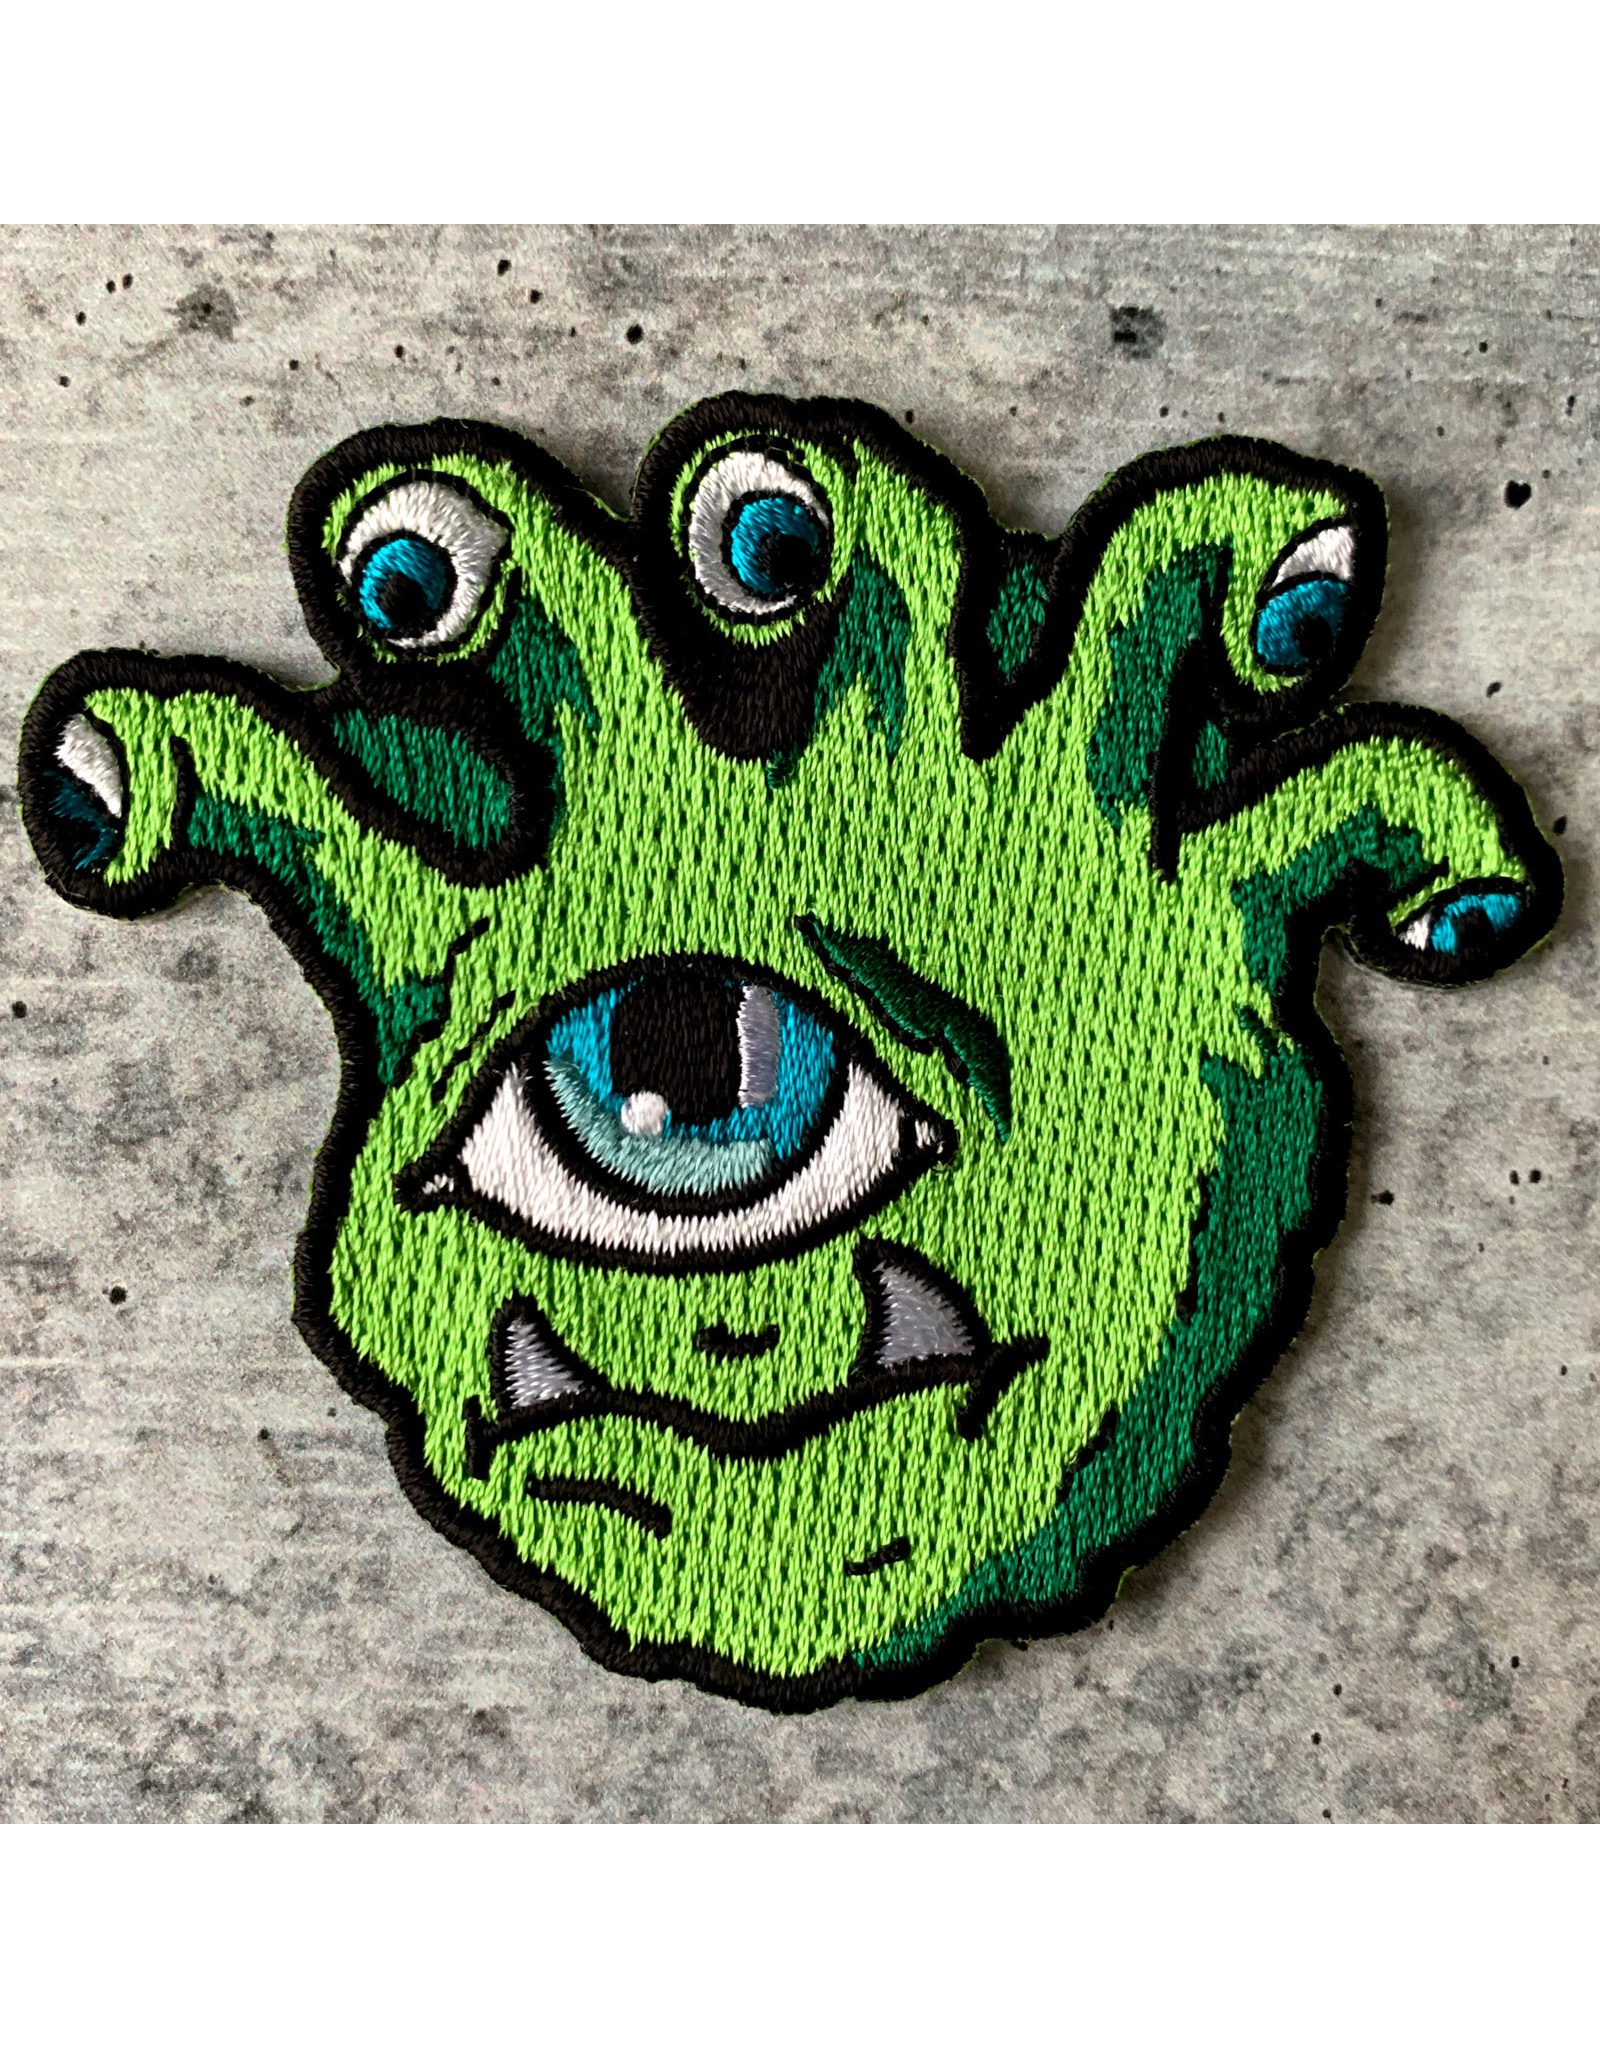 Creature Curation Orcish Eyegor – Patch